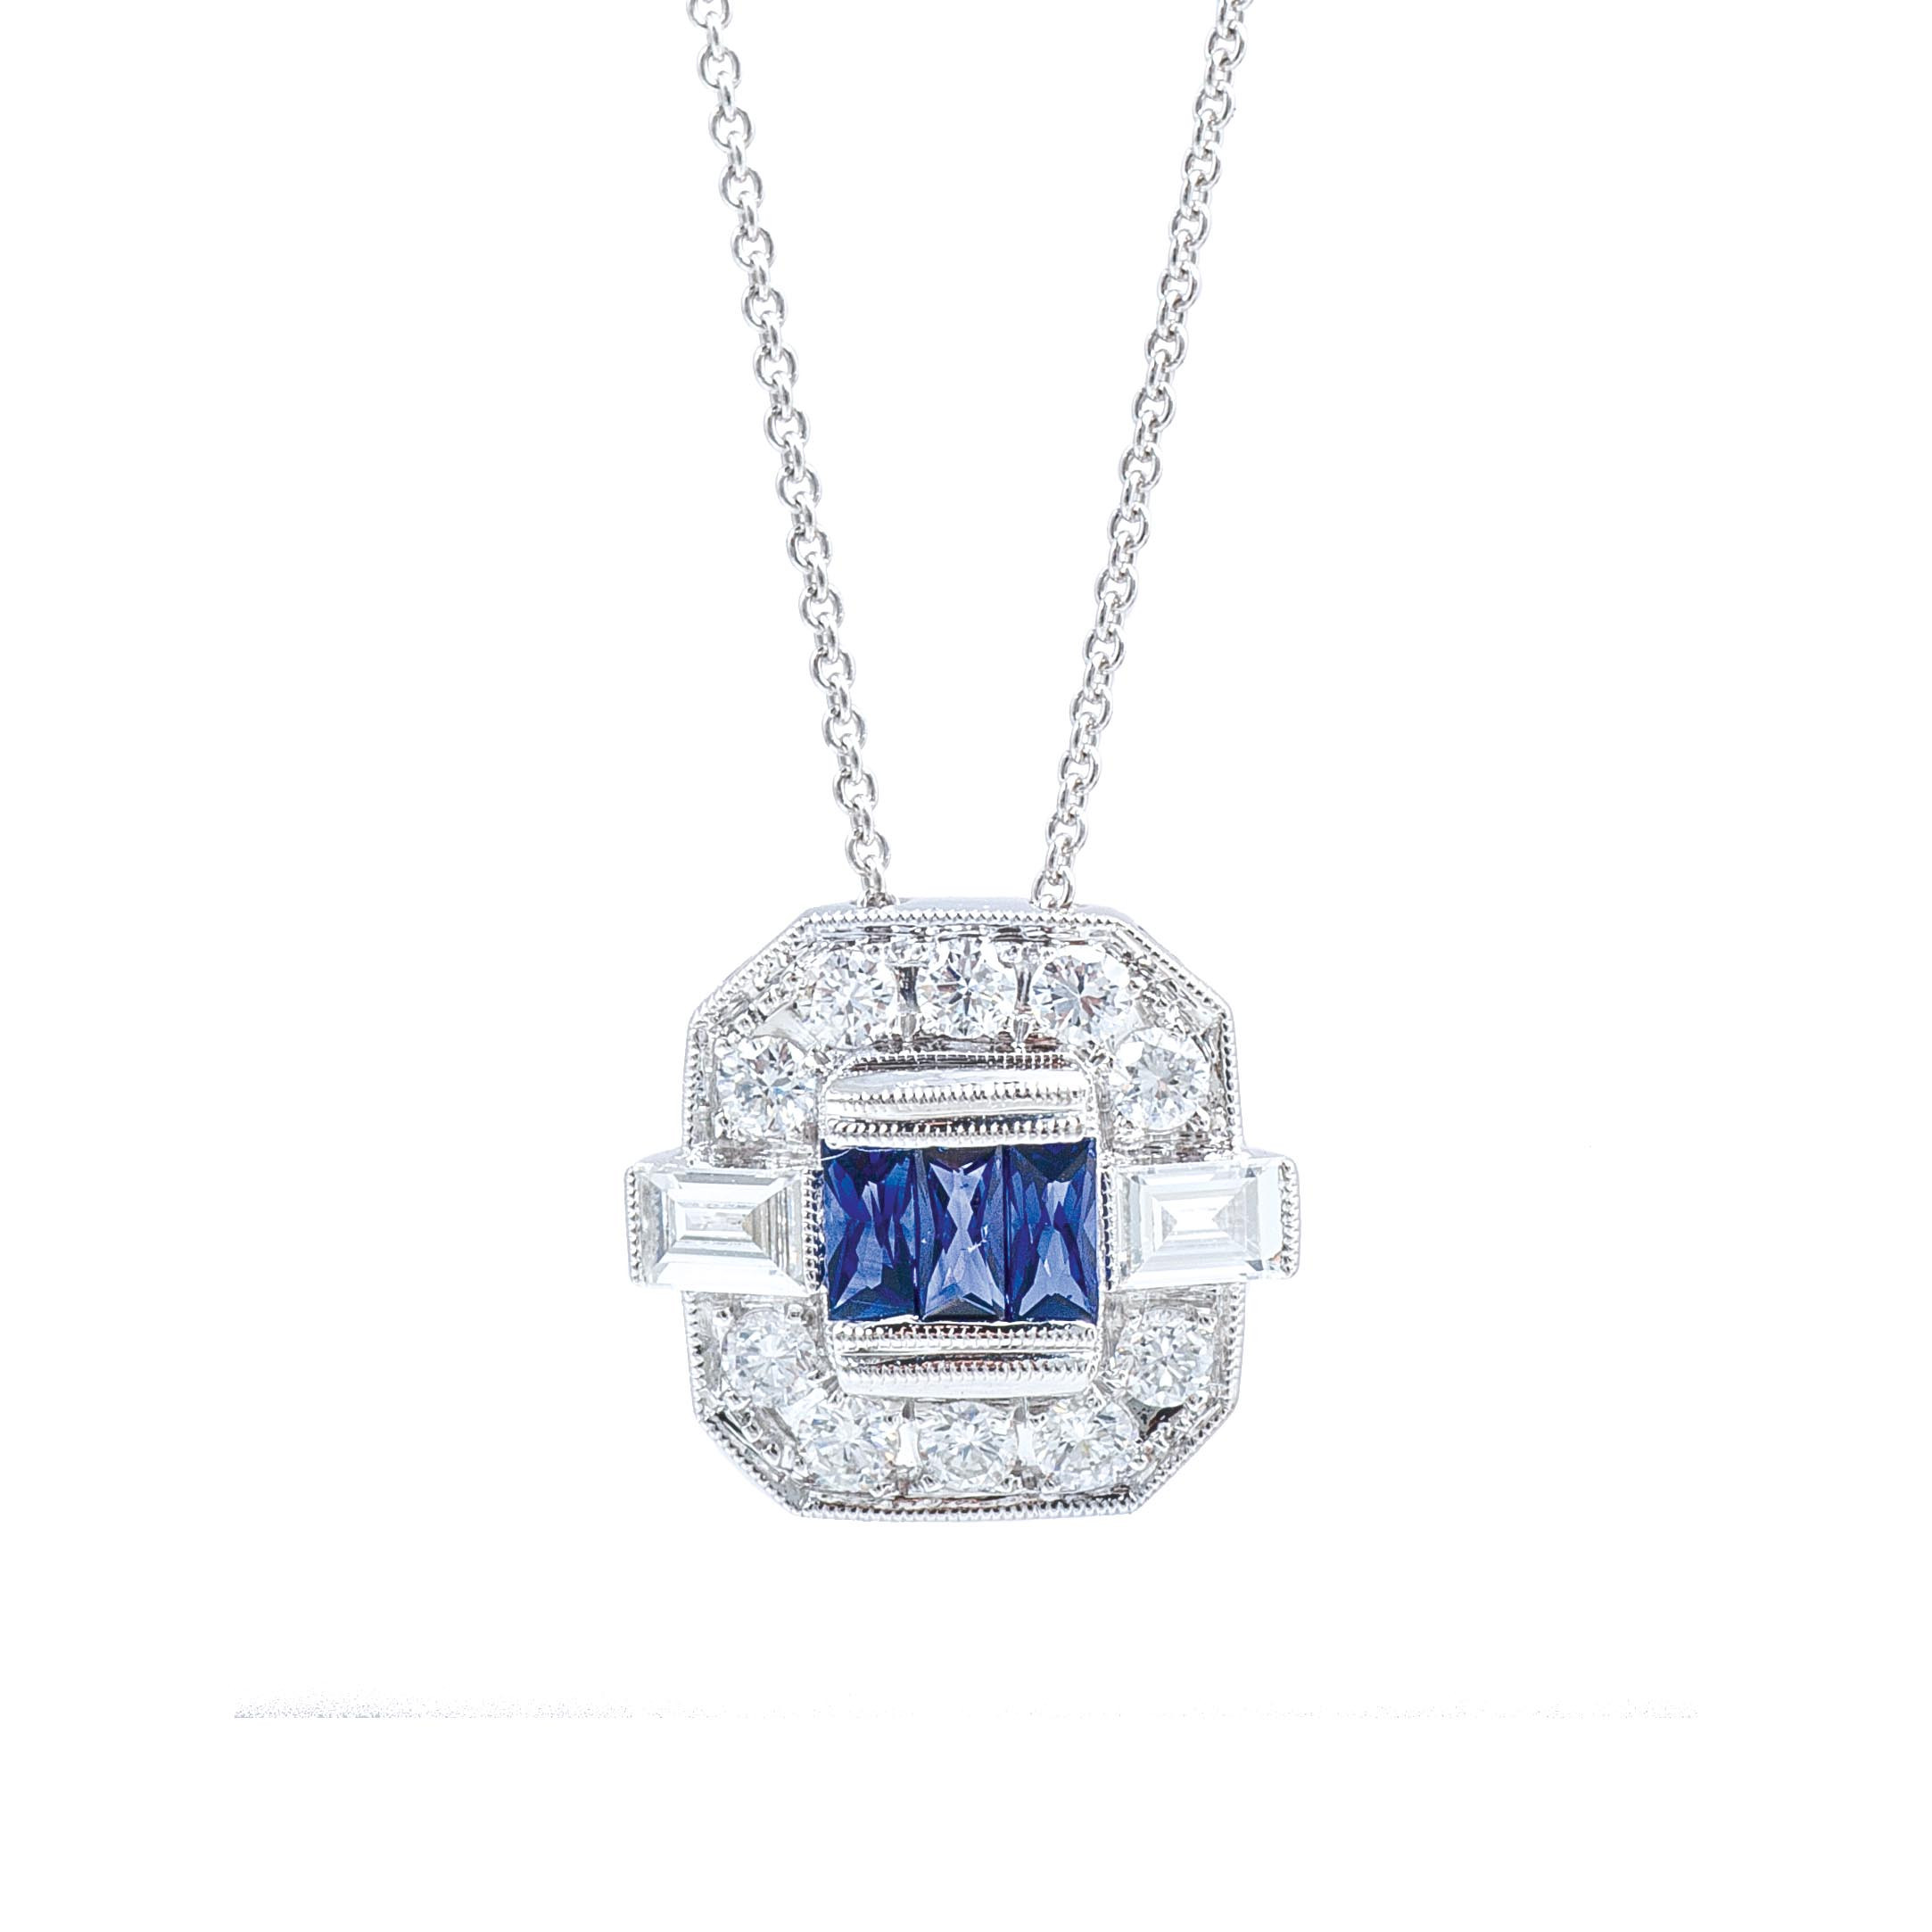 New Art Deco-Inspired Beverley K 0.85 CTW Blue Sapphire & Diamond Halo Necklace